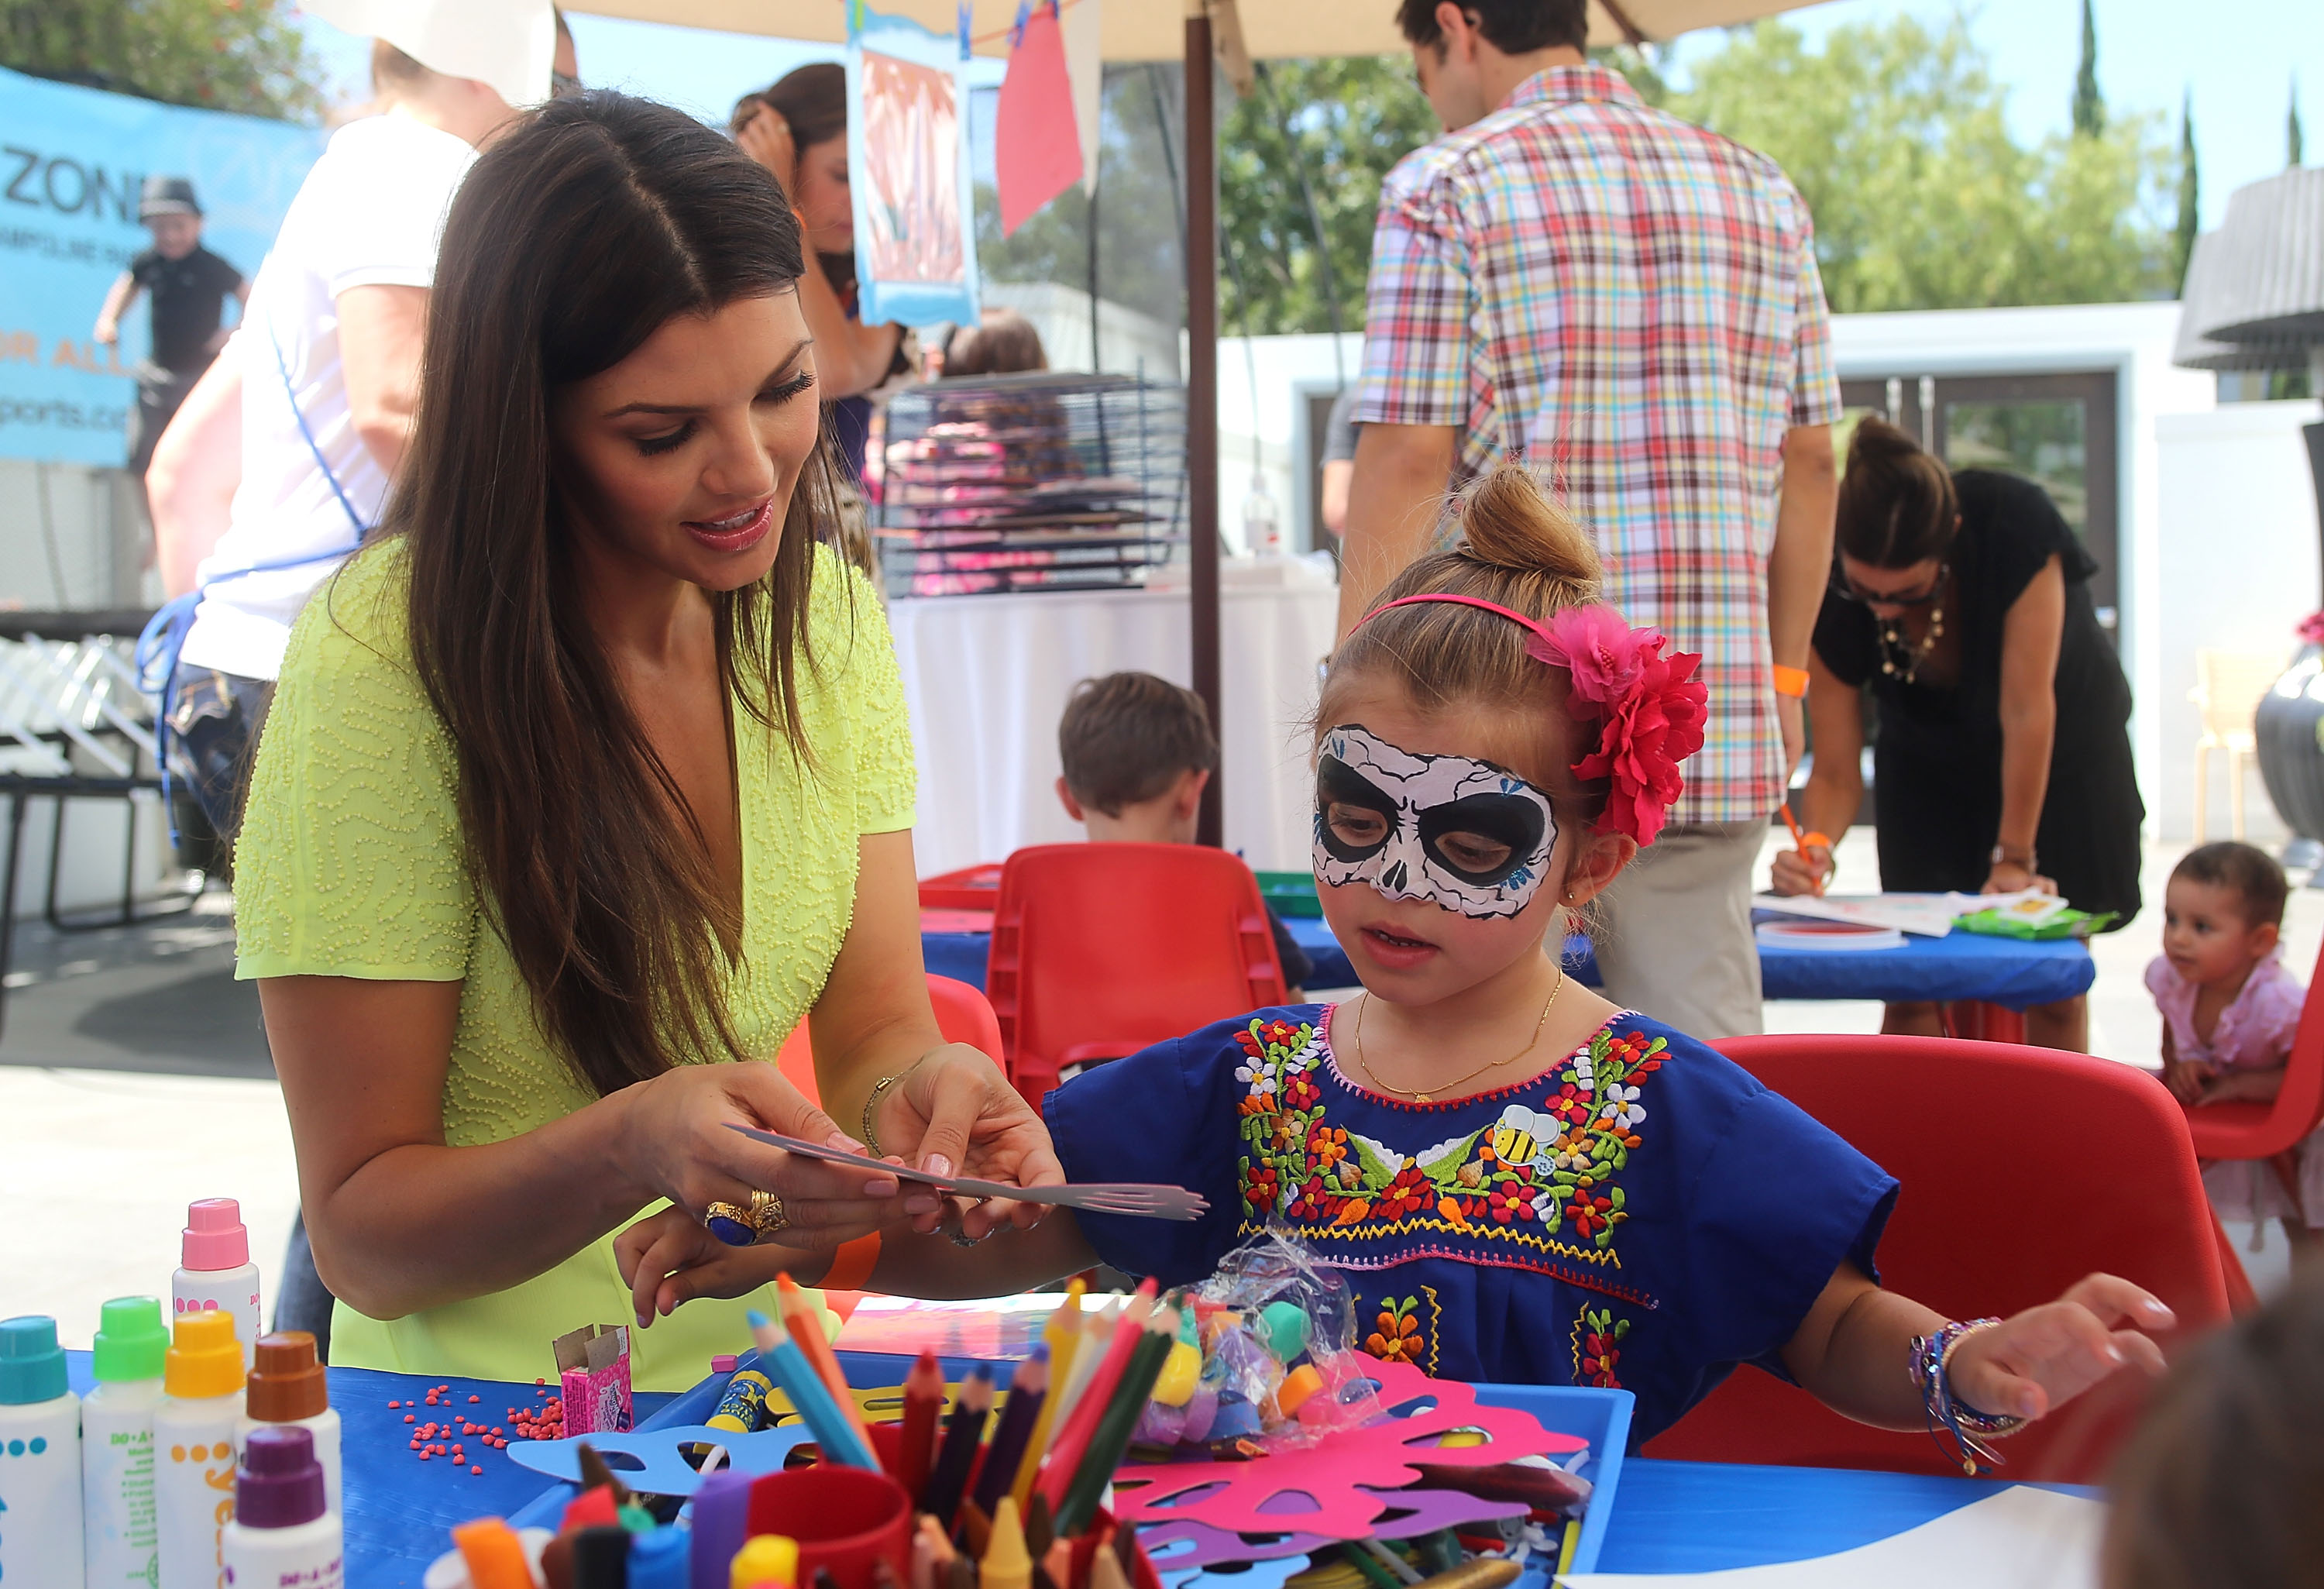 Ali Landry cohosted the second annual Red CARpet Event with Britax to teach fellow celebs how to properly install their car seats. She took time out from her hosting role to do some arts and crafts with daughter Estela Ines Monteverde.